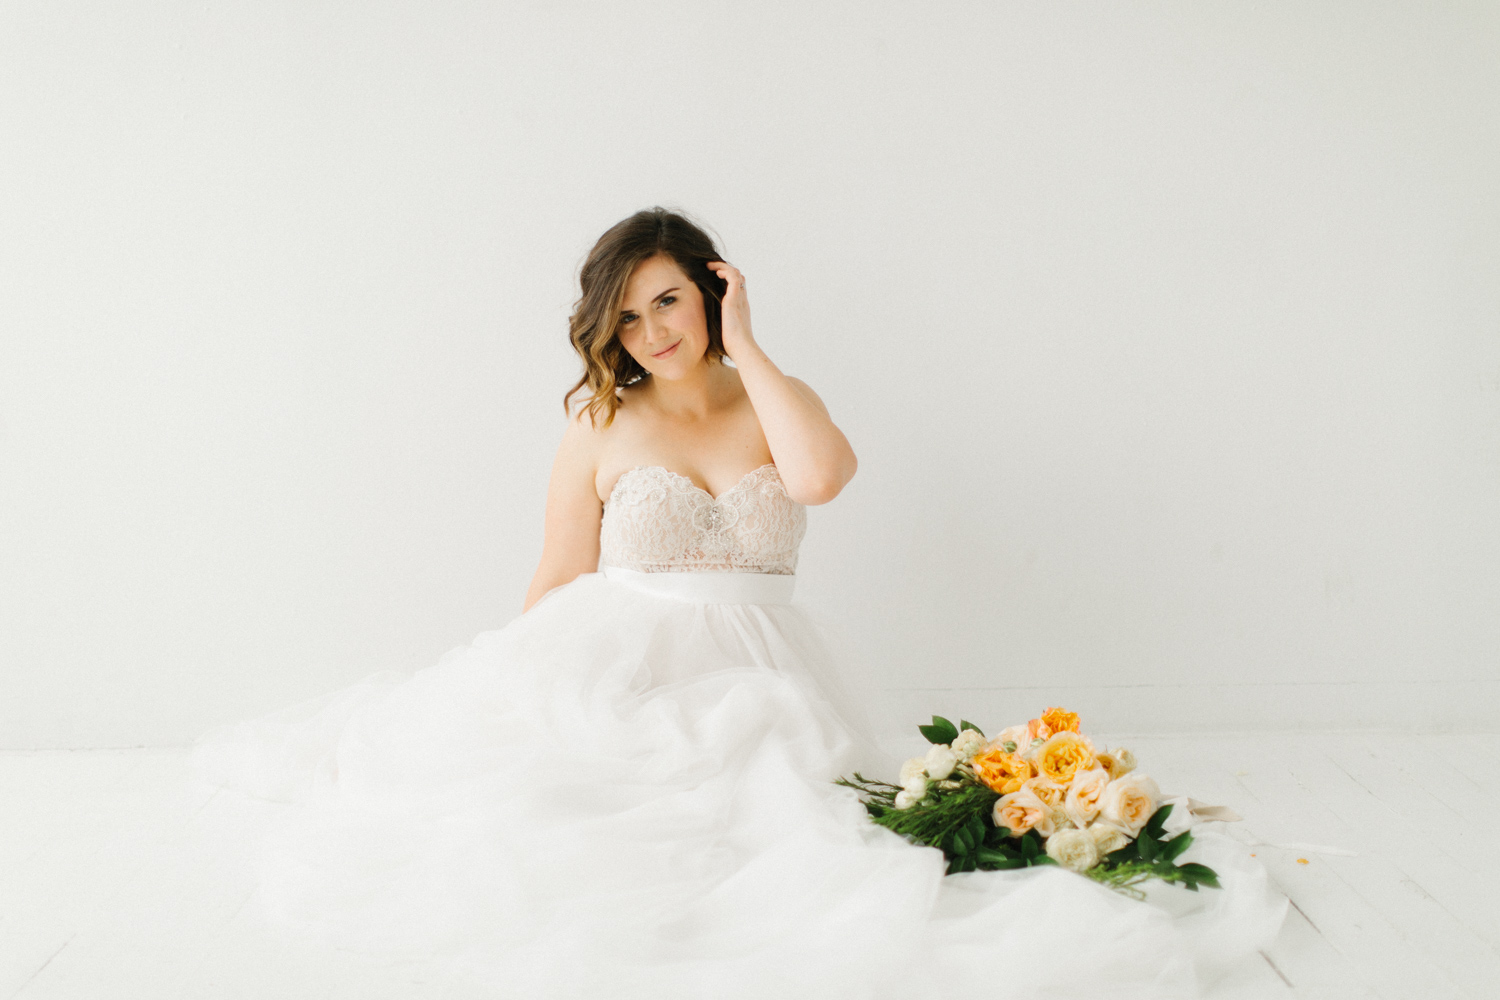 Seattle Fine Art Wedding Photographer | Seattle Downtown White Studio Bridal Session | Stunning Wedding Bouquet | Seattle Bride | Seattle Wedding | Photography Studio Space | Emma Rose Company Wedding Photography-29.jpg